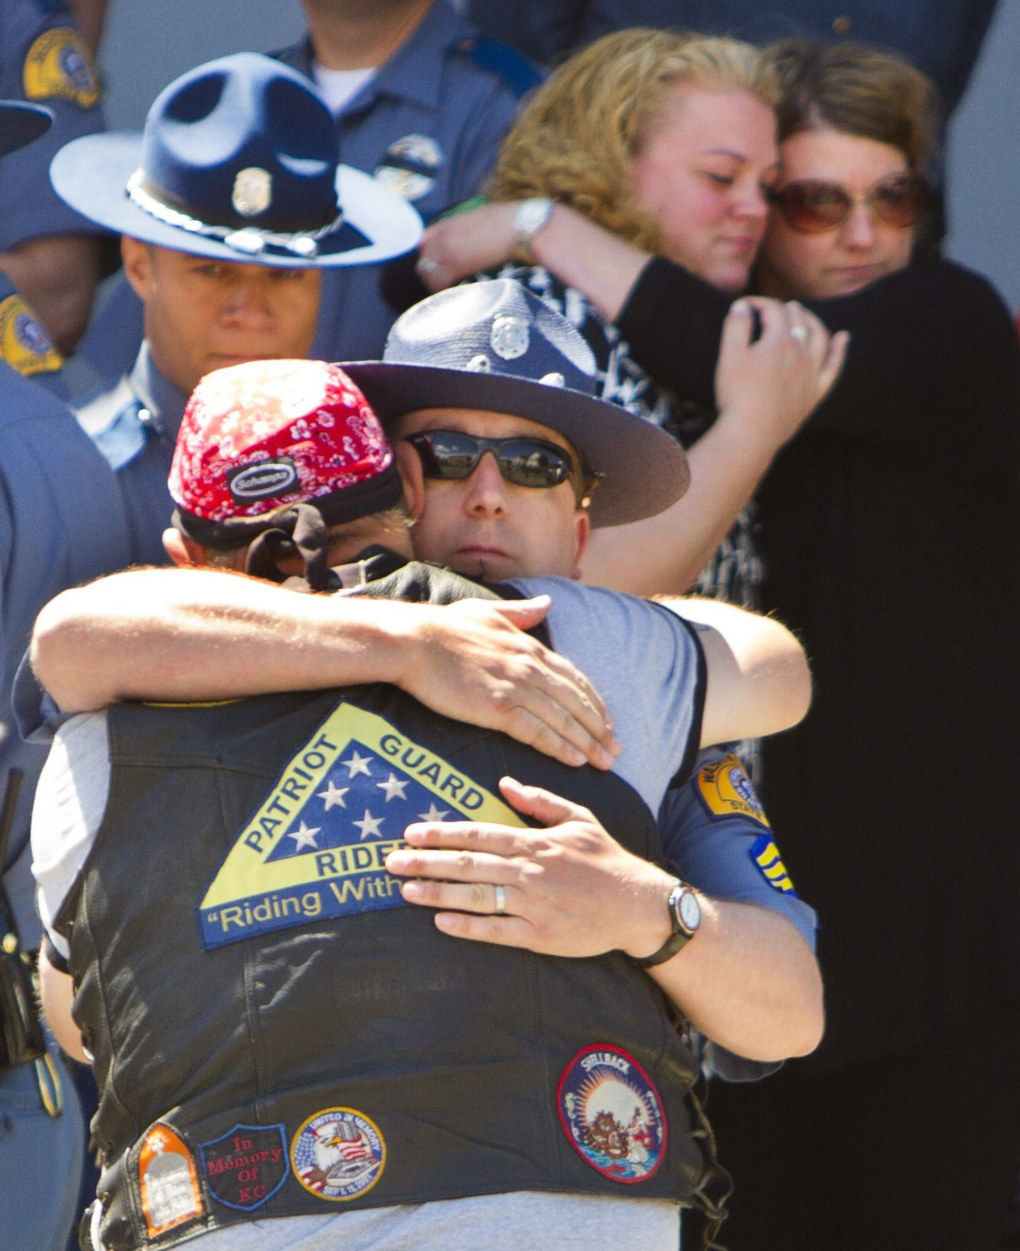 Bryan Lipscy, a member of the Patriot Guard Riders, hugs Washington State Trooper Chris Caiola after the body of Trooper Sean M. O'Connell, who was killed while on duty when his motorcycle was struck by another vehicle Friday evening, was brought to the Solie Funeral Home by a police escort on Sunday afternoon in Everett, June 2, 2013. Several members of the Patriot Guard Riders were on hand to salute the hearse carrying O'Connell's body as it drove past.  (Mike Siegel / The Seattle Times)